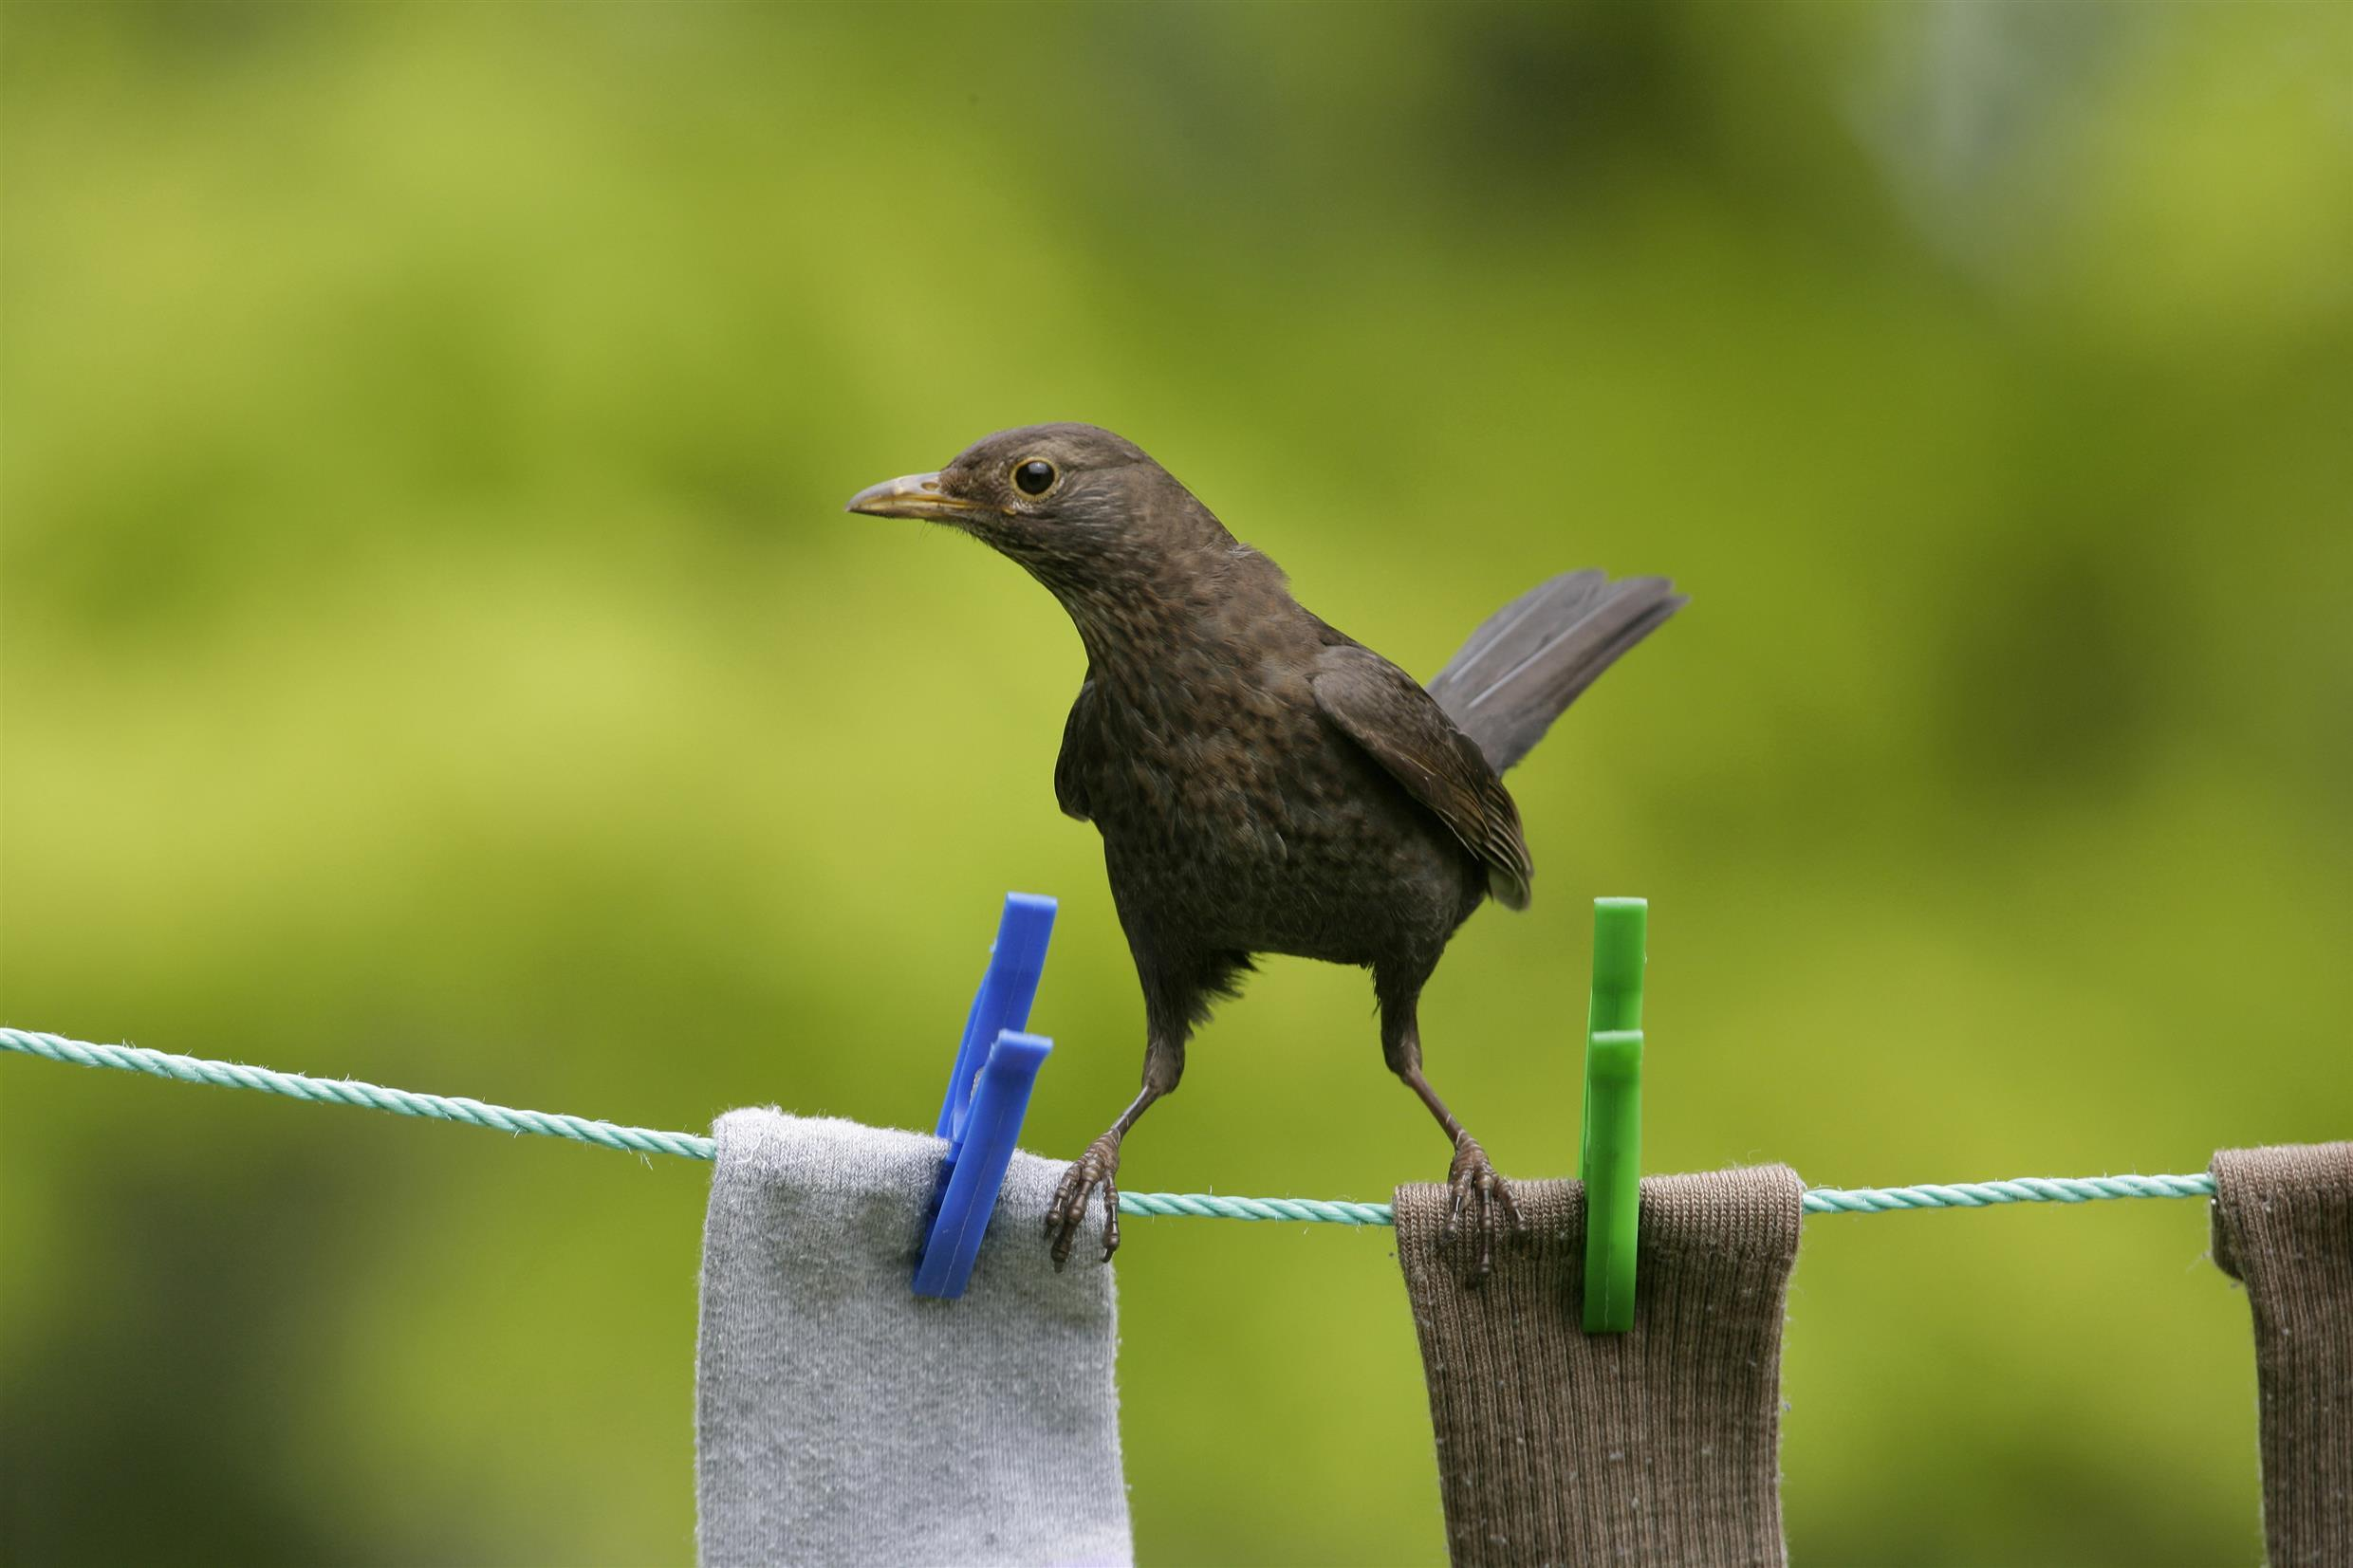 A bird perching on a washing line